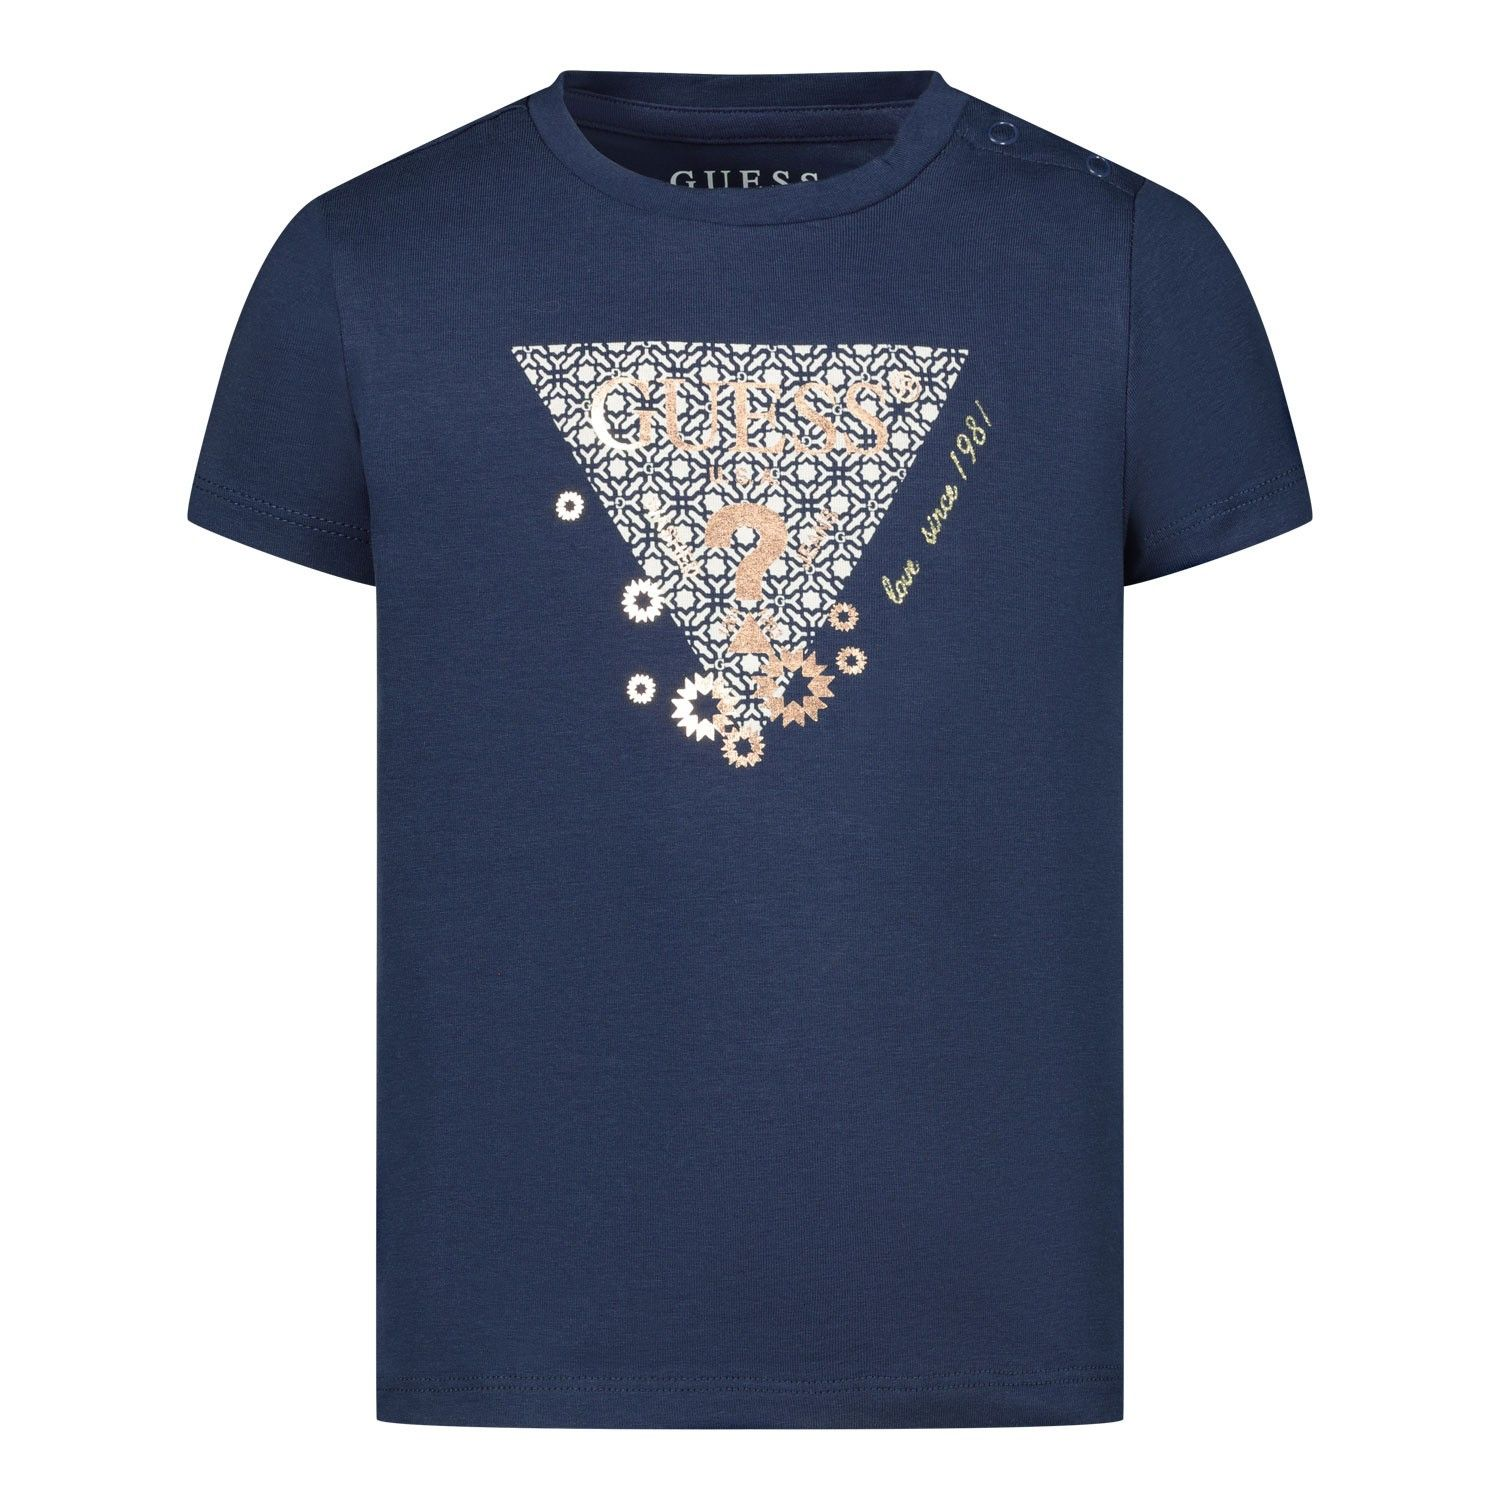 Picture of Guess K02I00 baby shirt navy